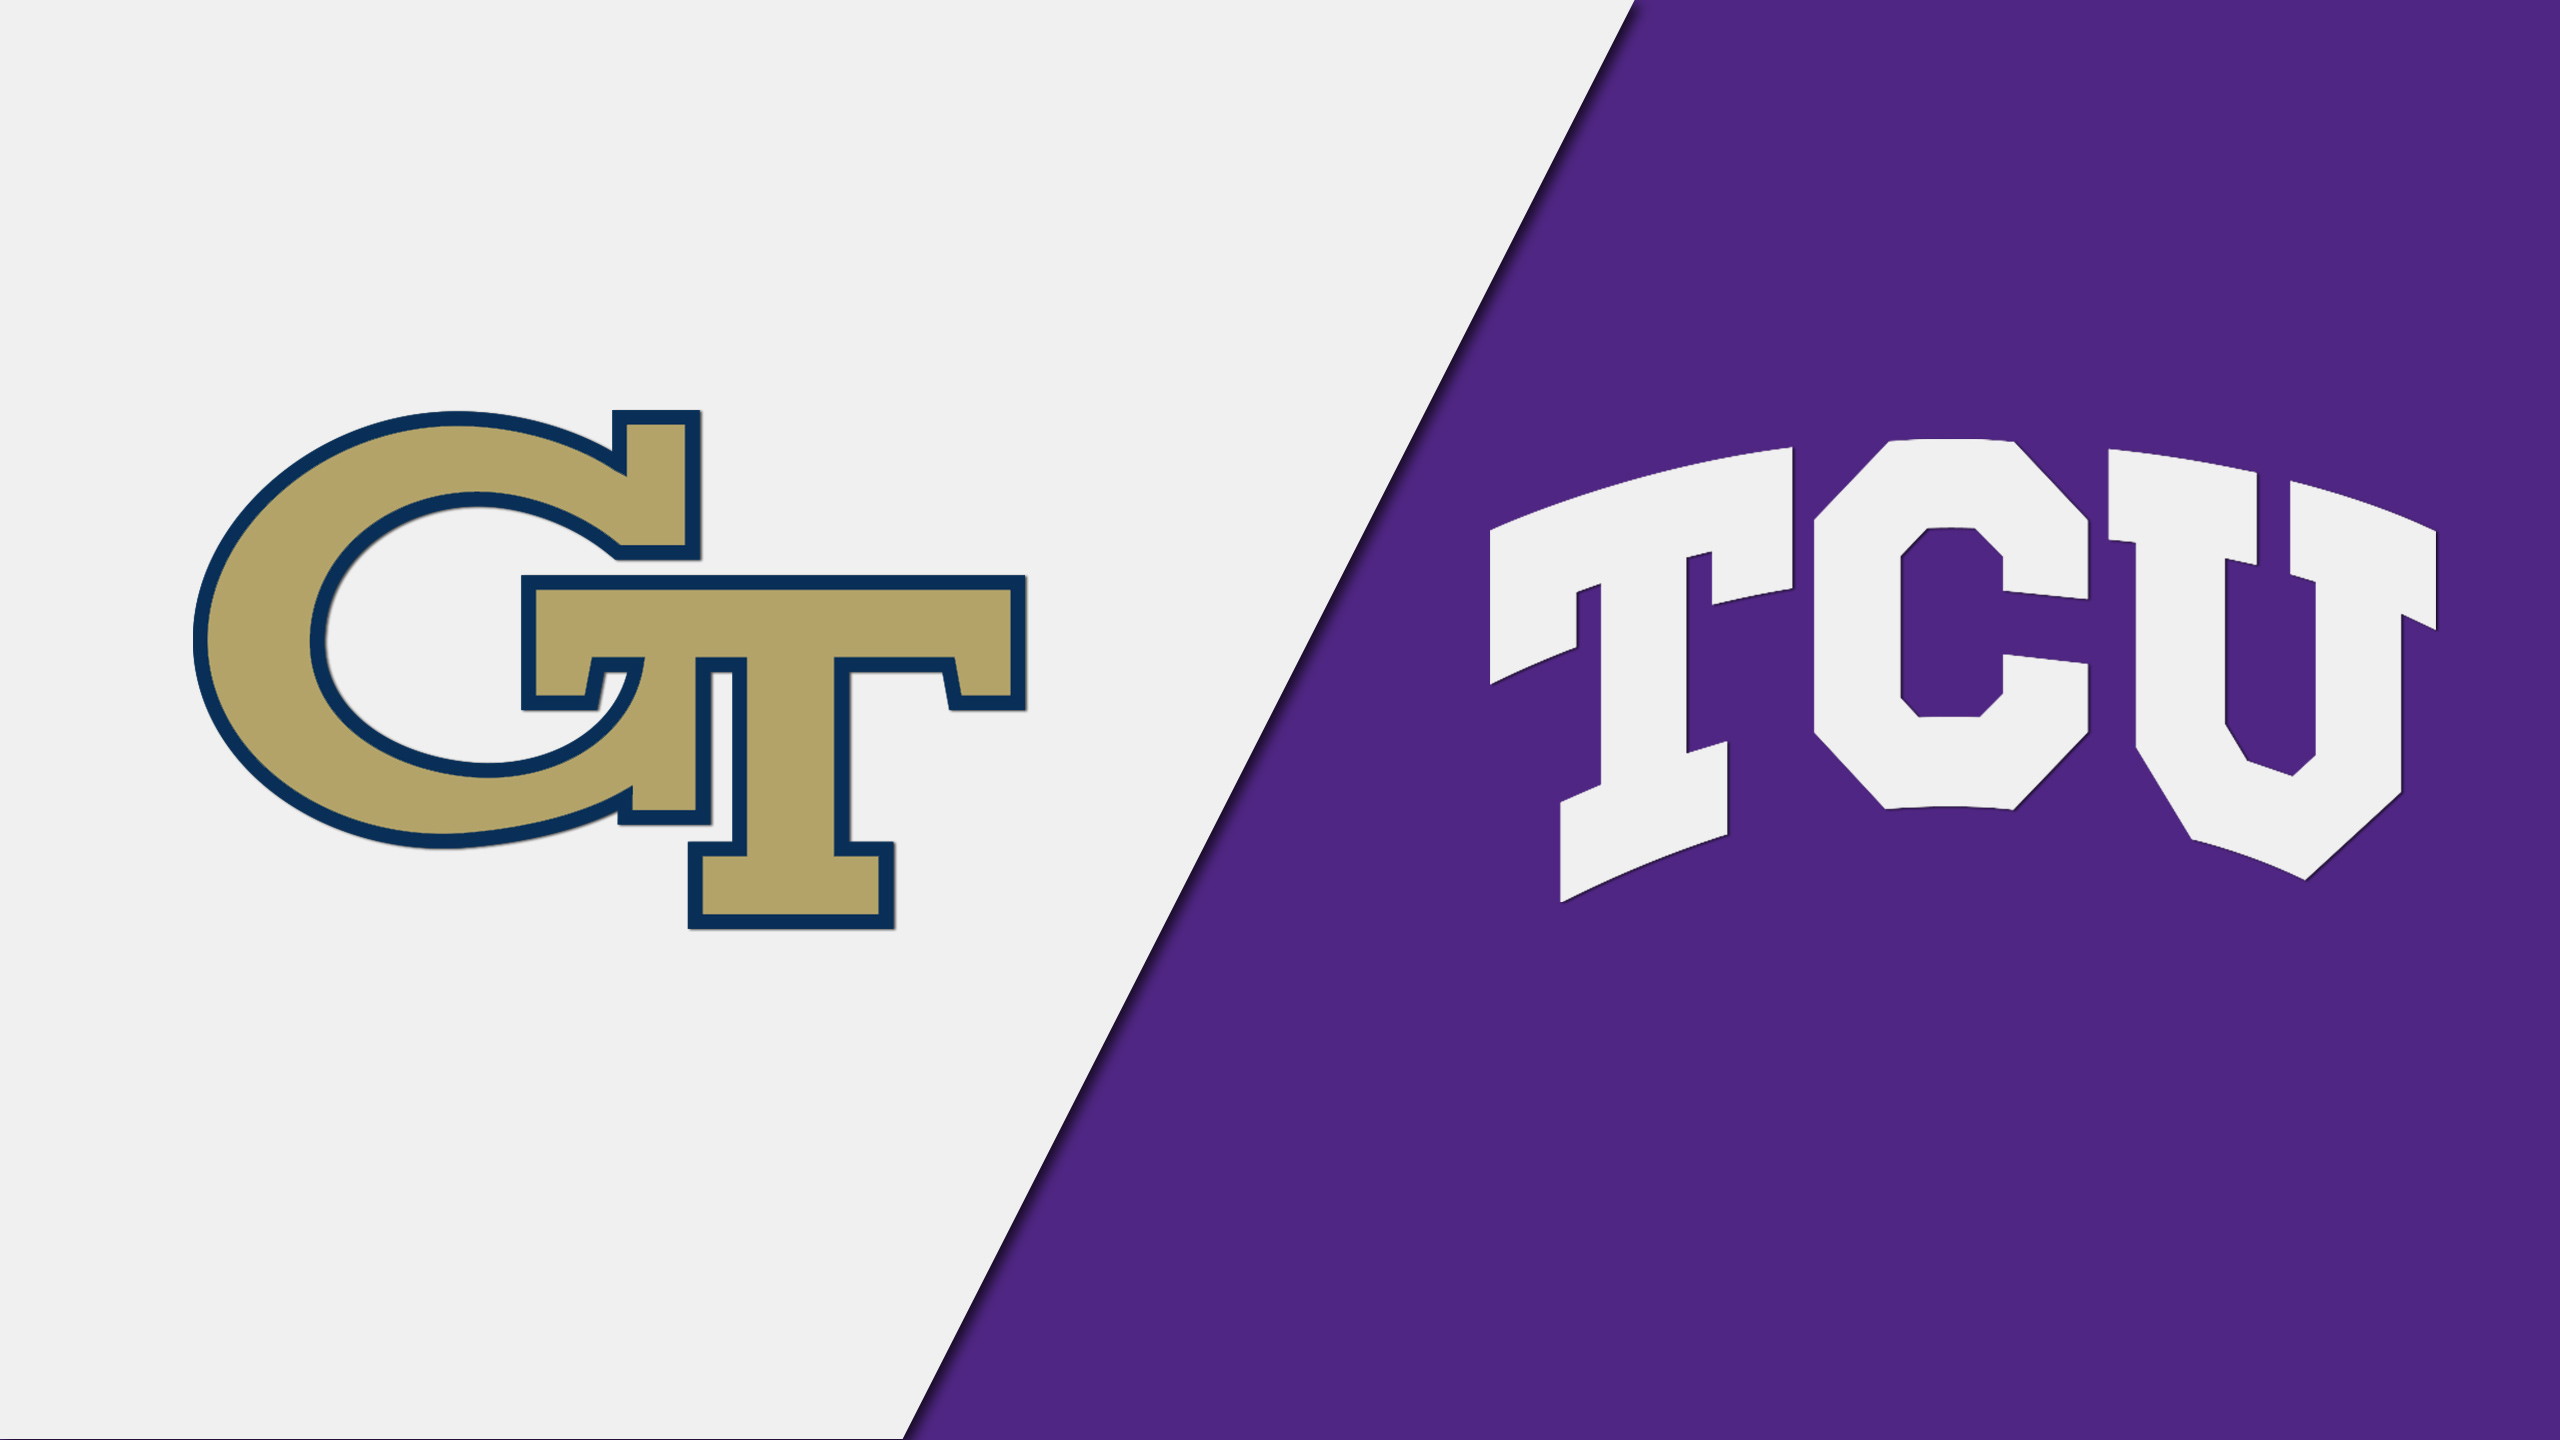 #6 Georgia Tech vs. #4 TCU (Championship) (re-air)